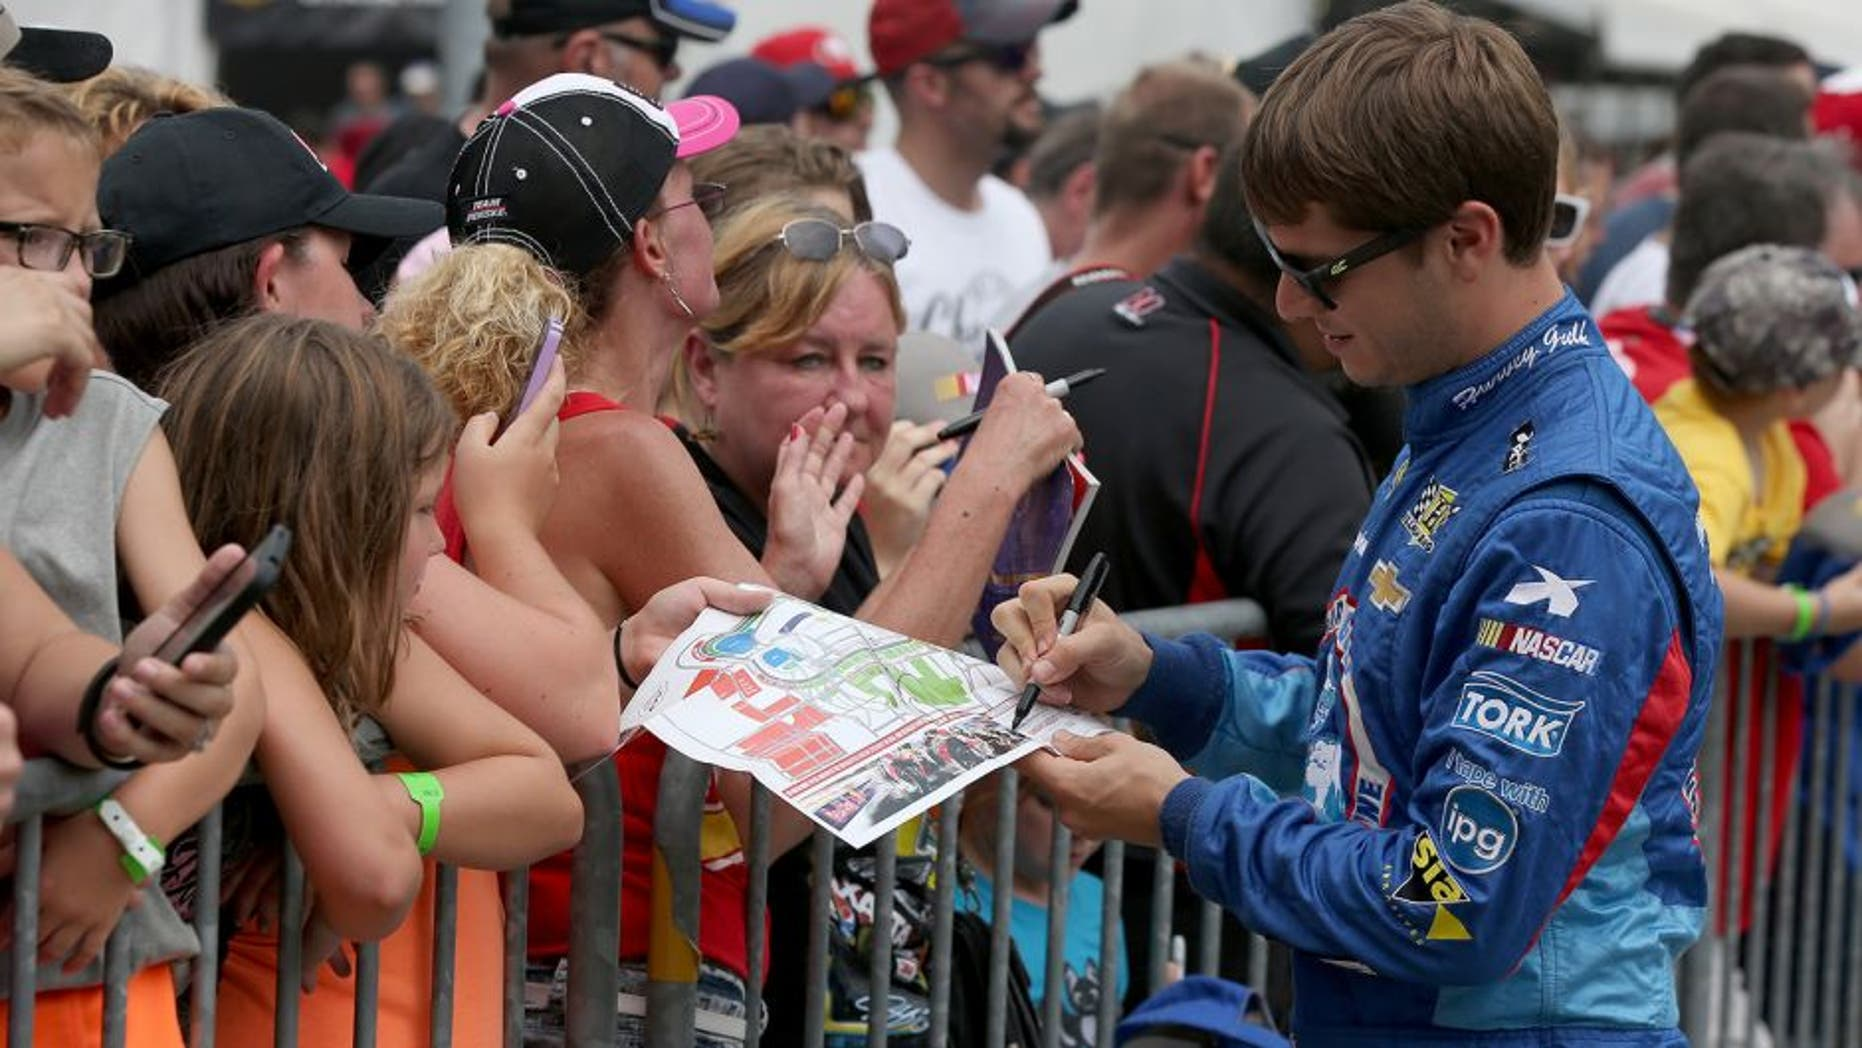 INDIANAPOLIS, IN - JULY 26: Landon Cassill, driver of the #40 Chevrolet, signs autographs for fans prior to the NASCAR Sprint Cup Series Crown Royal Presents the Jeff Kyle 400 at the Brickyard at Indianapolis Motor Speedway on July 26, 2015 in Indianapolis, Indiana. (Photo by Sean Gardner/NASCAR via Getty Images)